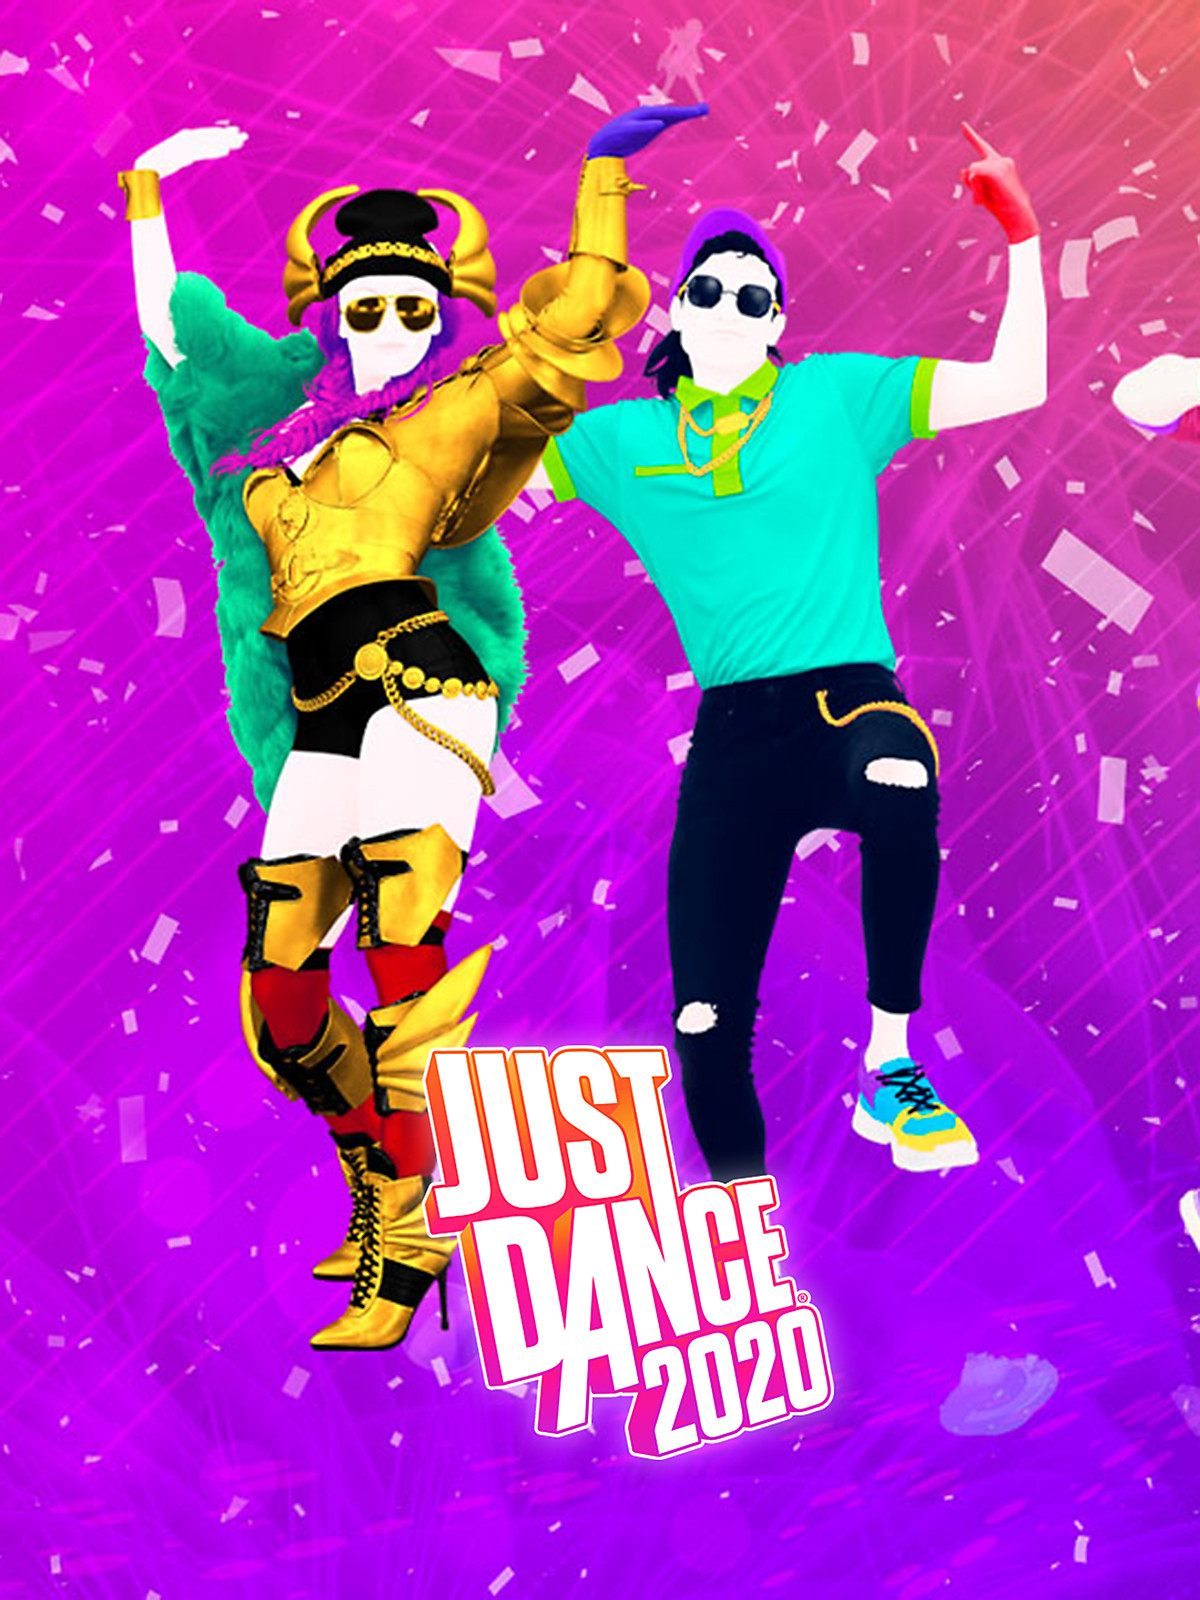 just-dance-2020-product-tile-01-ps4-us-11jun19